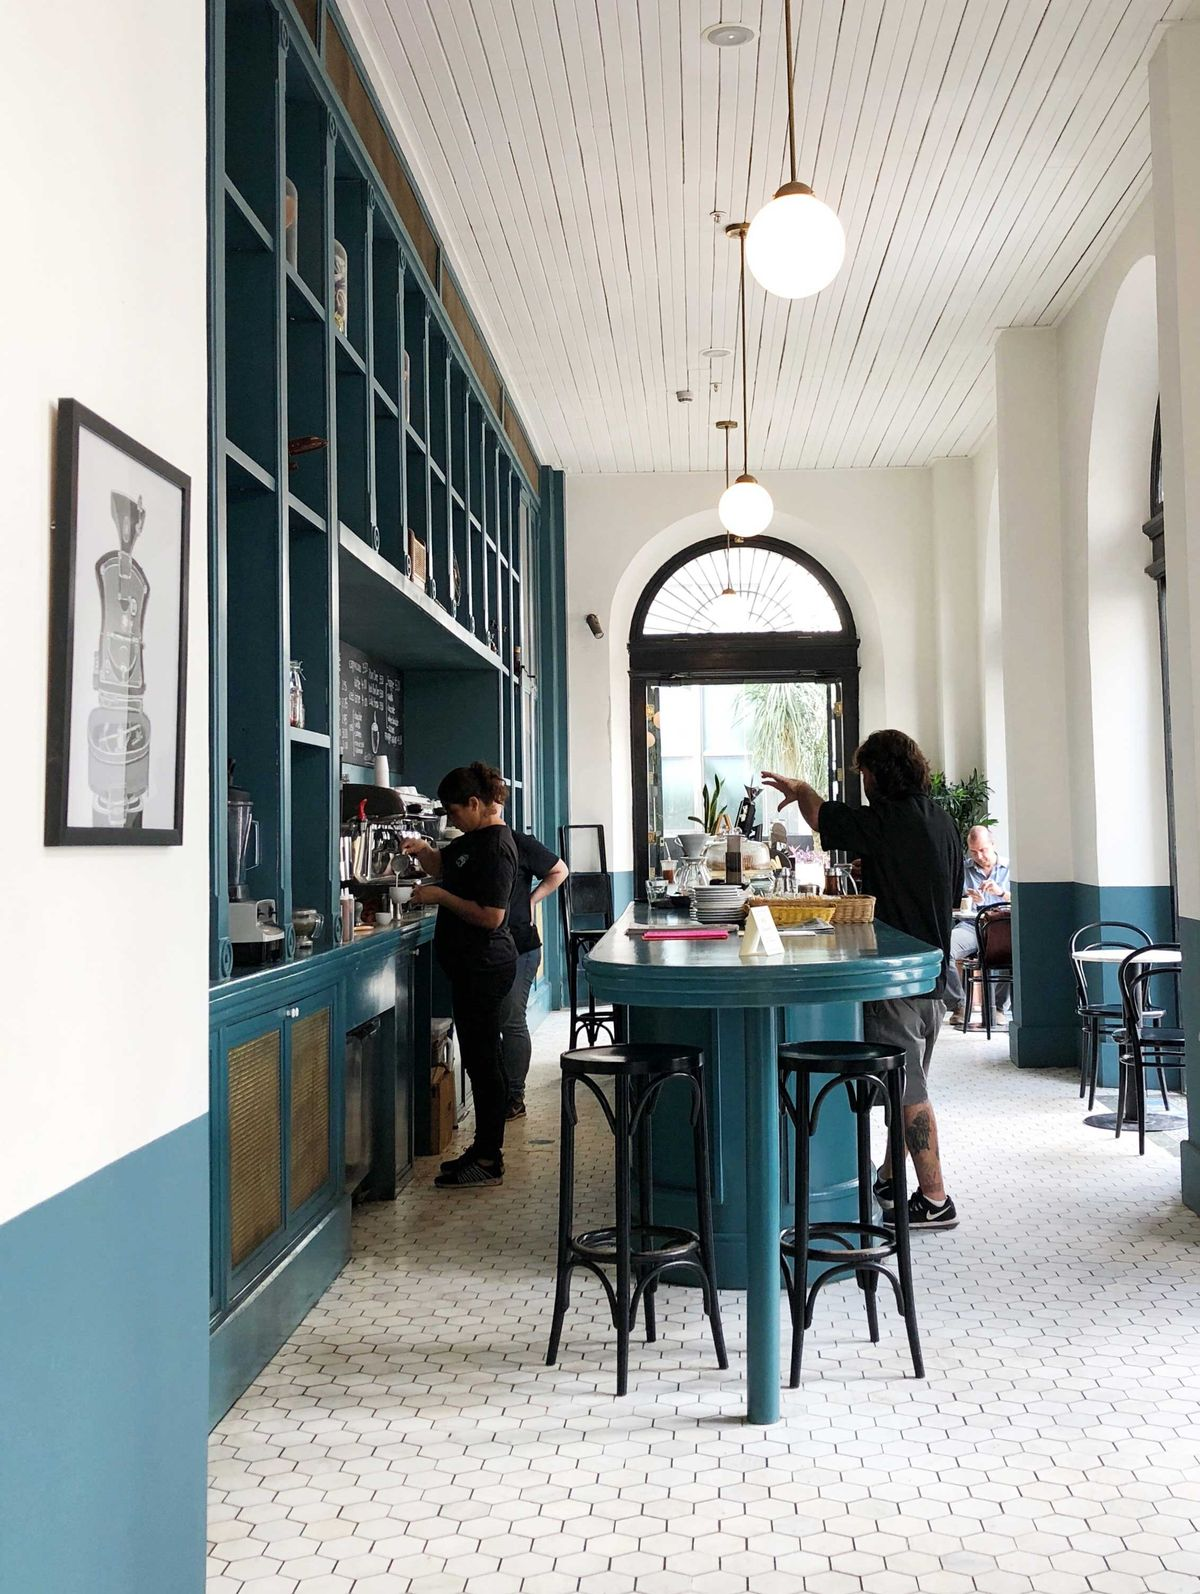 Swell Guide to Panama. Cafe Unido at The American Trade Hotel. Photo by Lesley Robb.